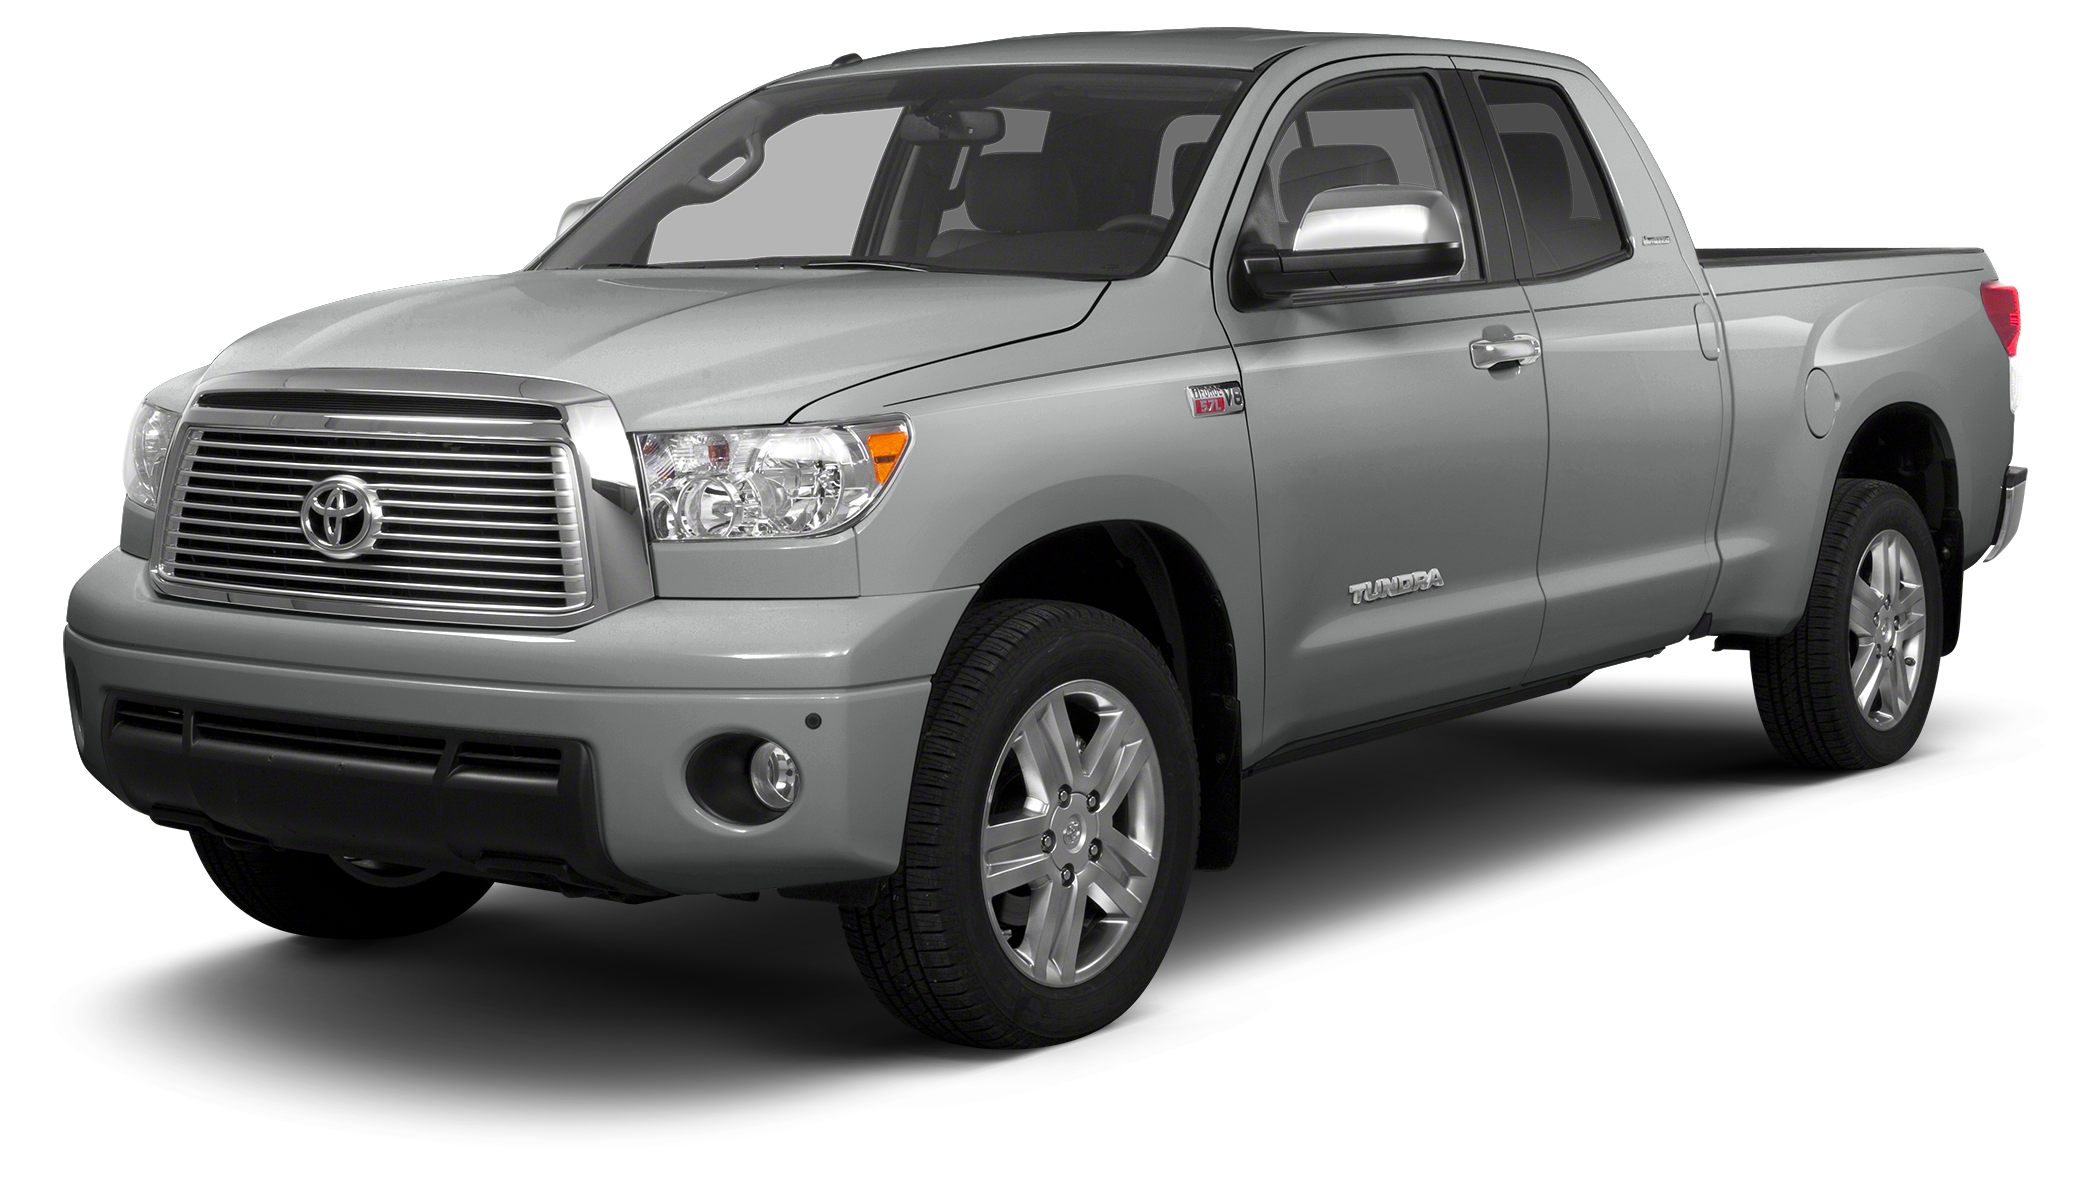 2013 Toyota Tundra Limited If you are interested in this vehicleand have questions or need inform